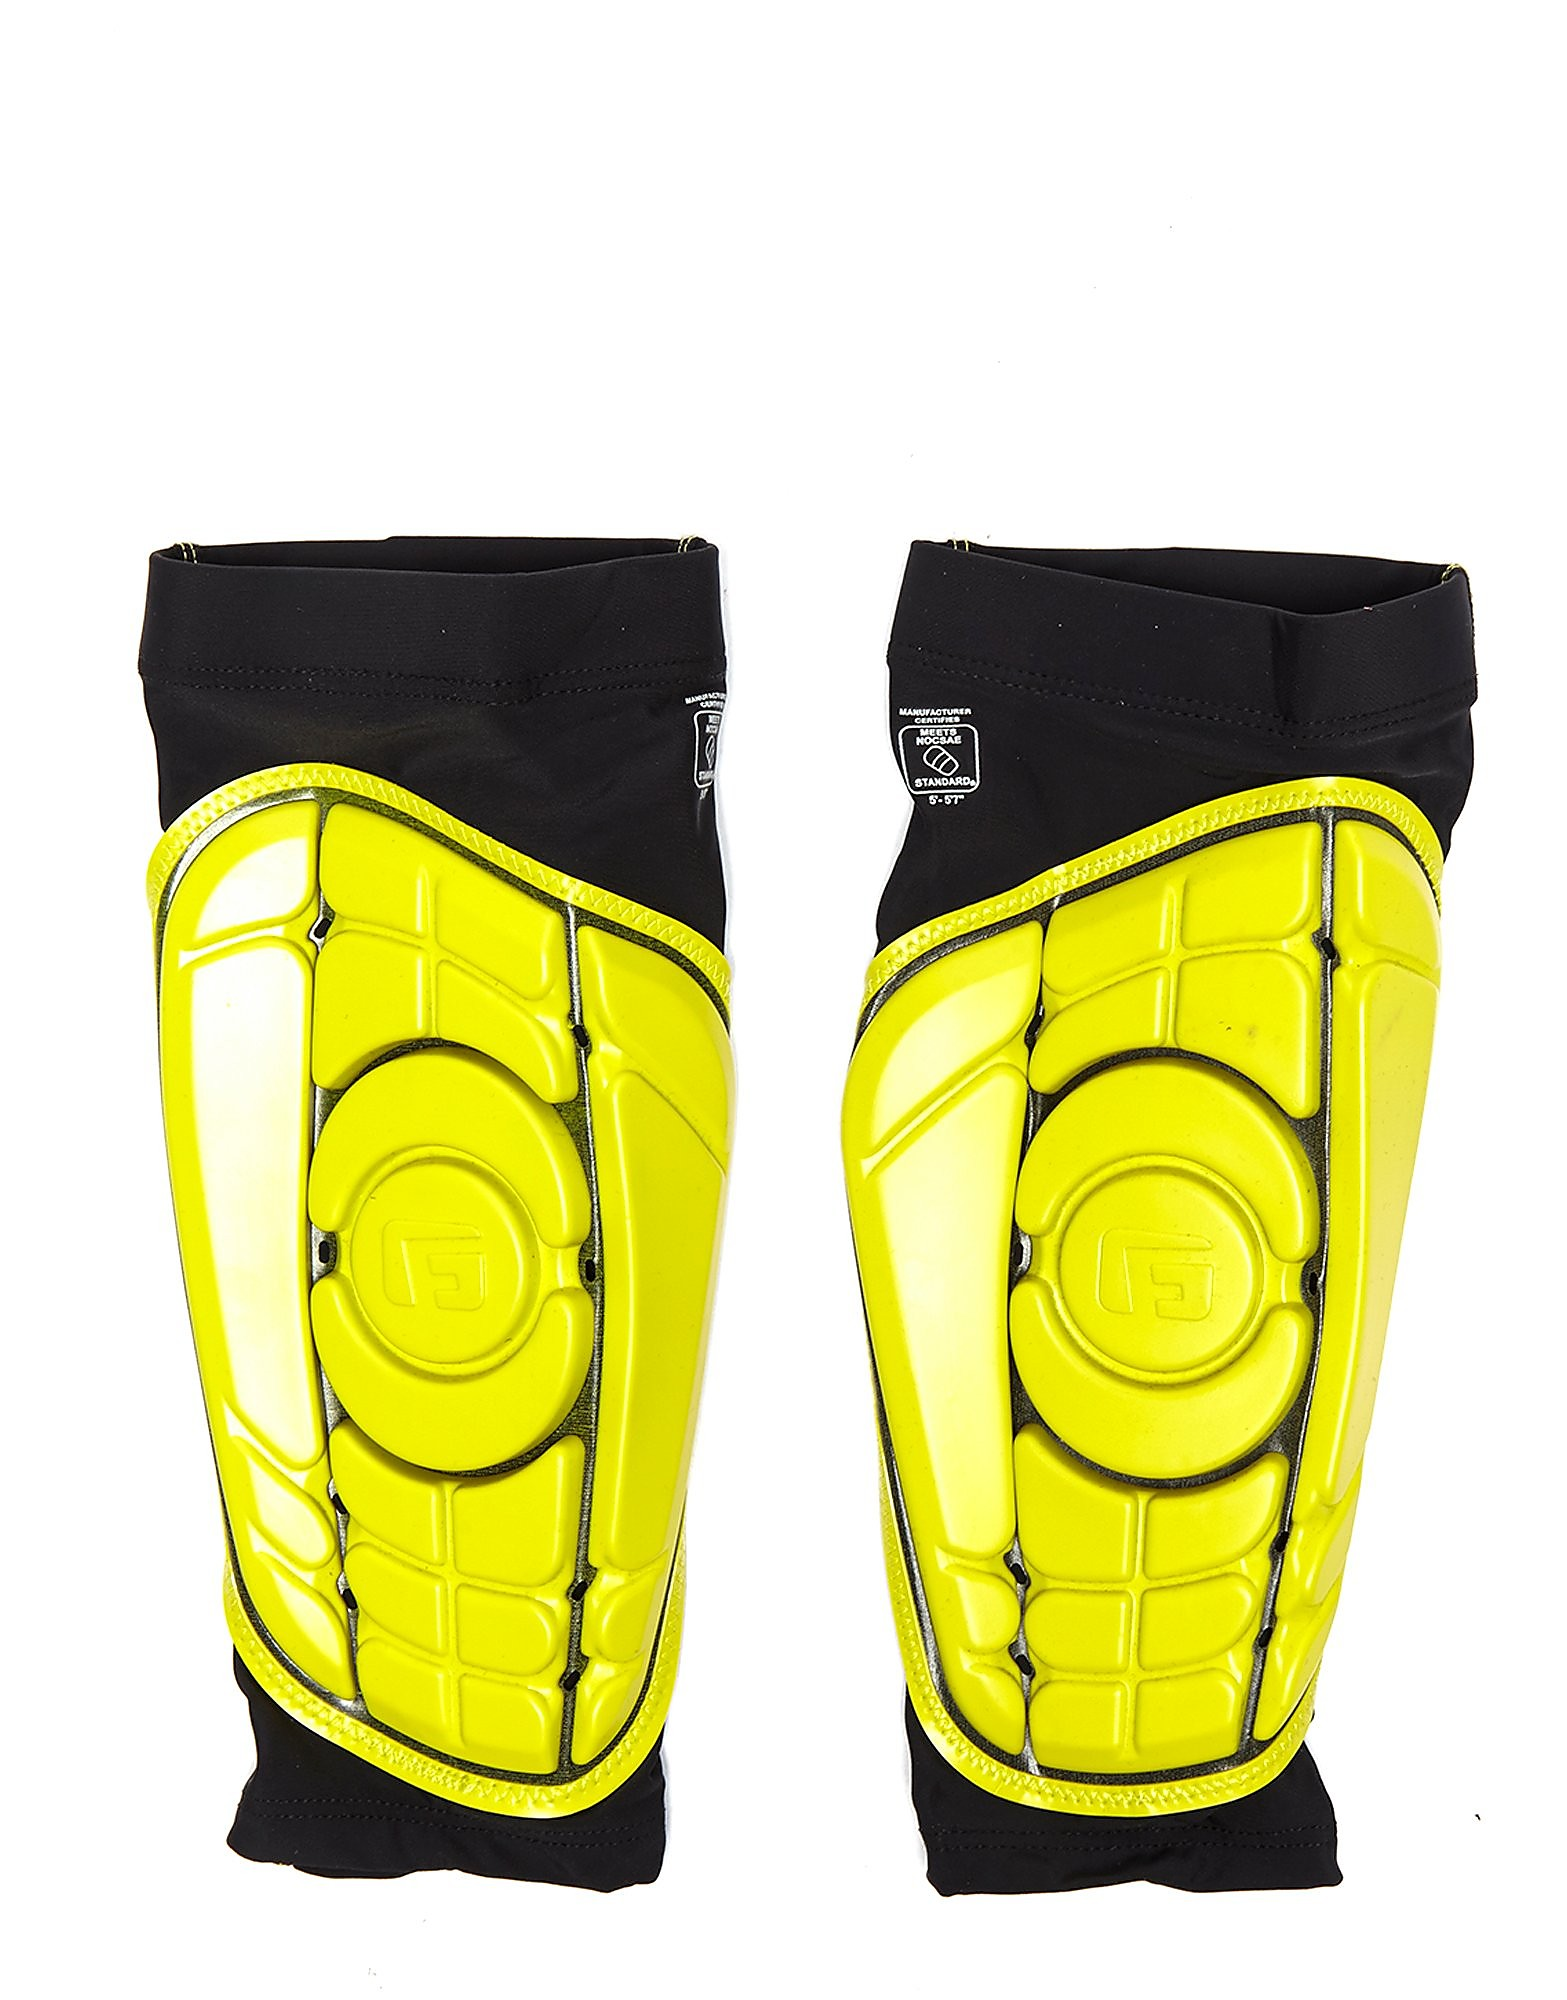 G-Form Pro-S Shin Guards